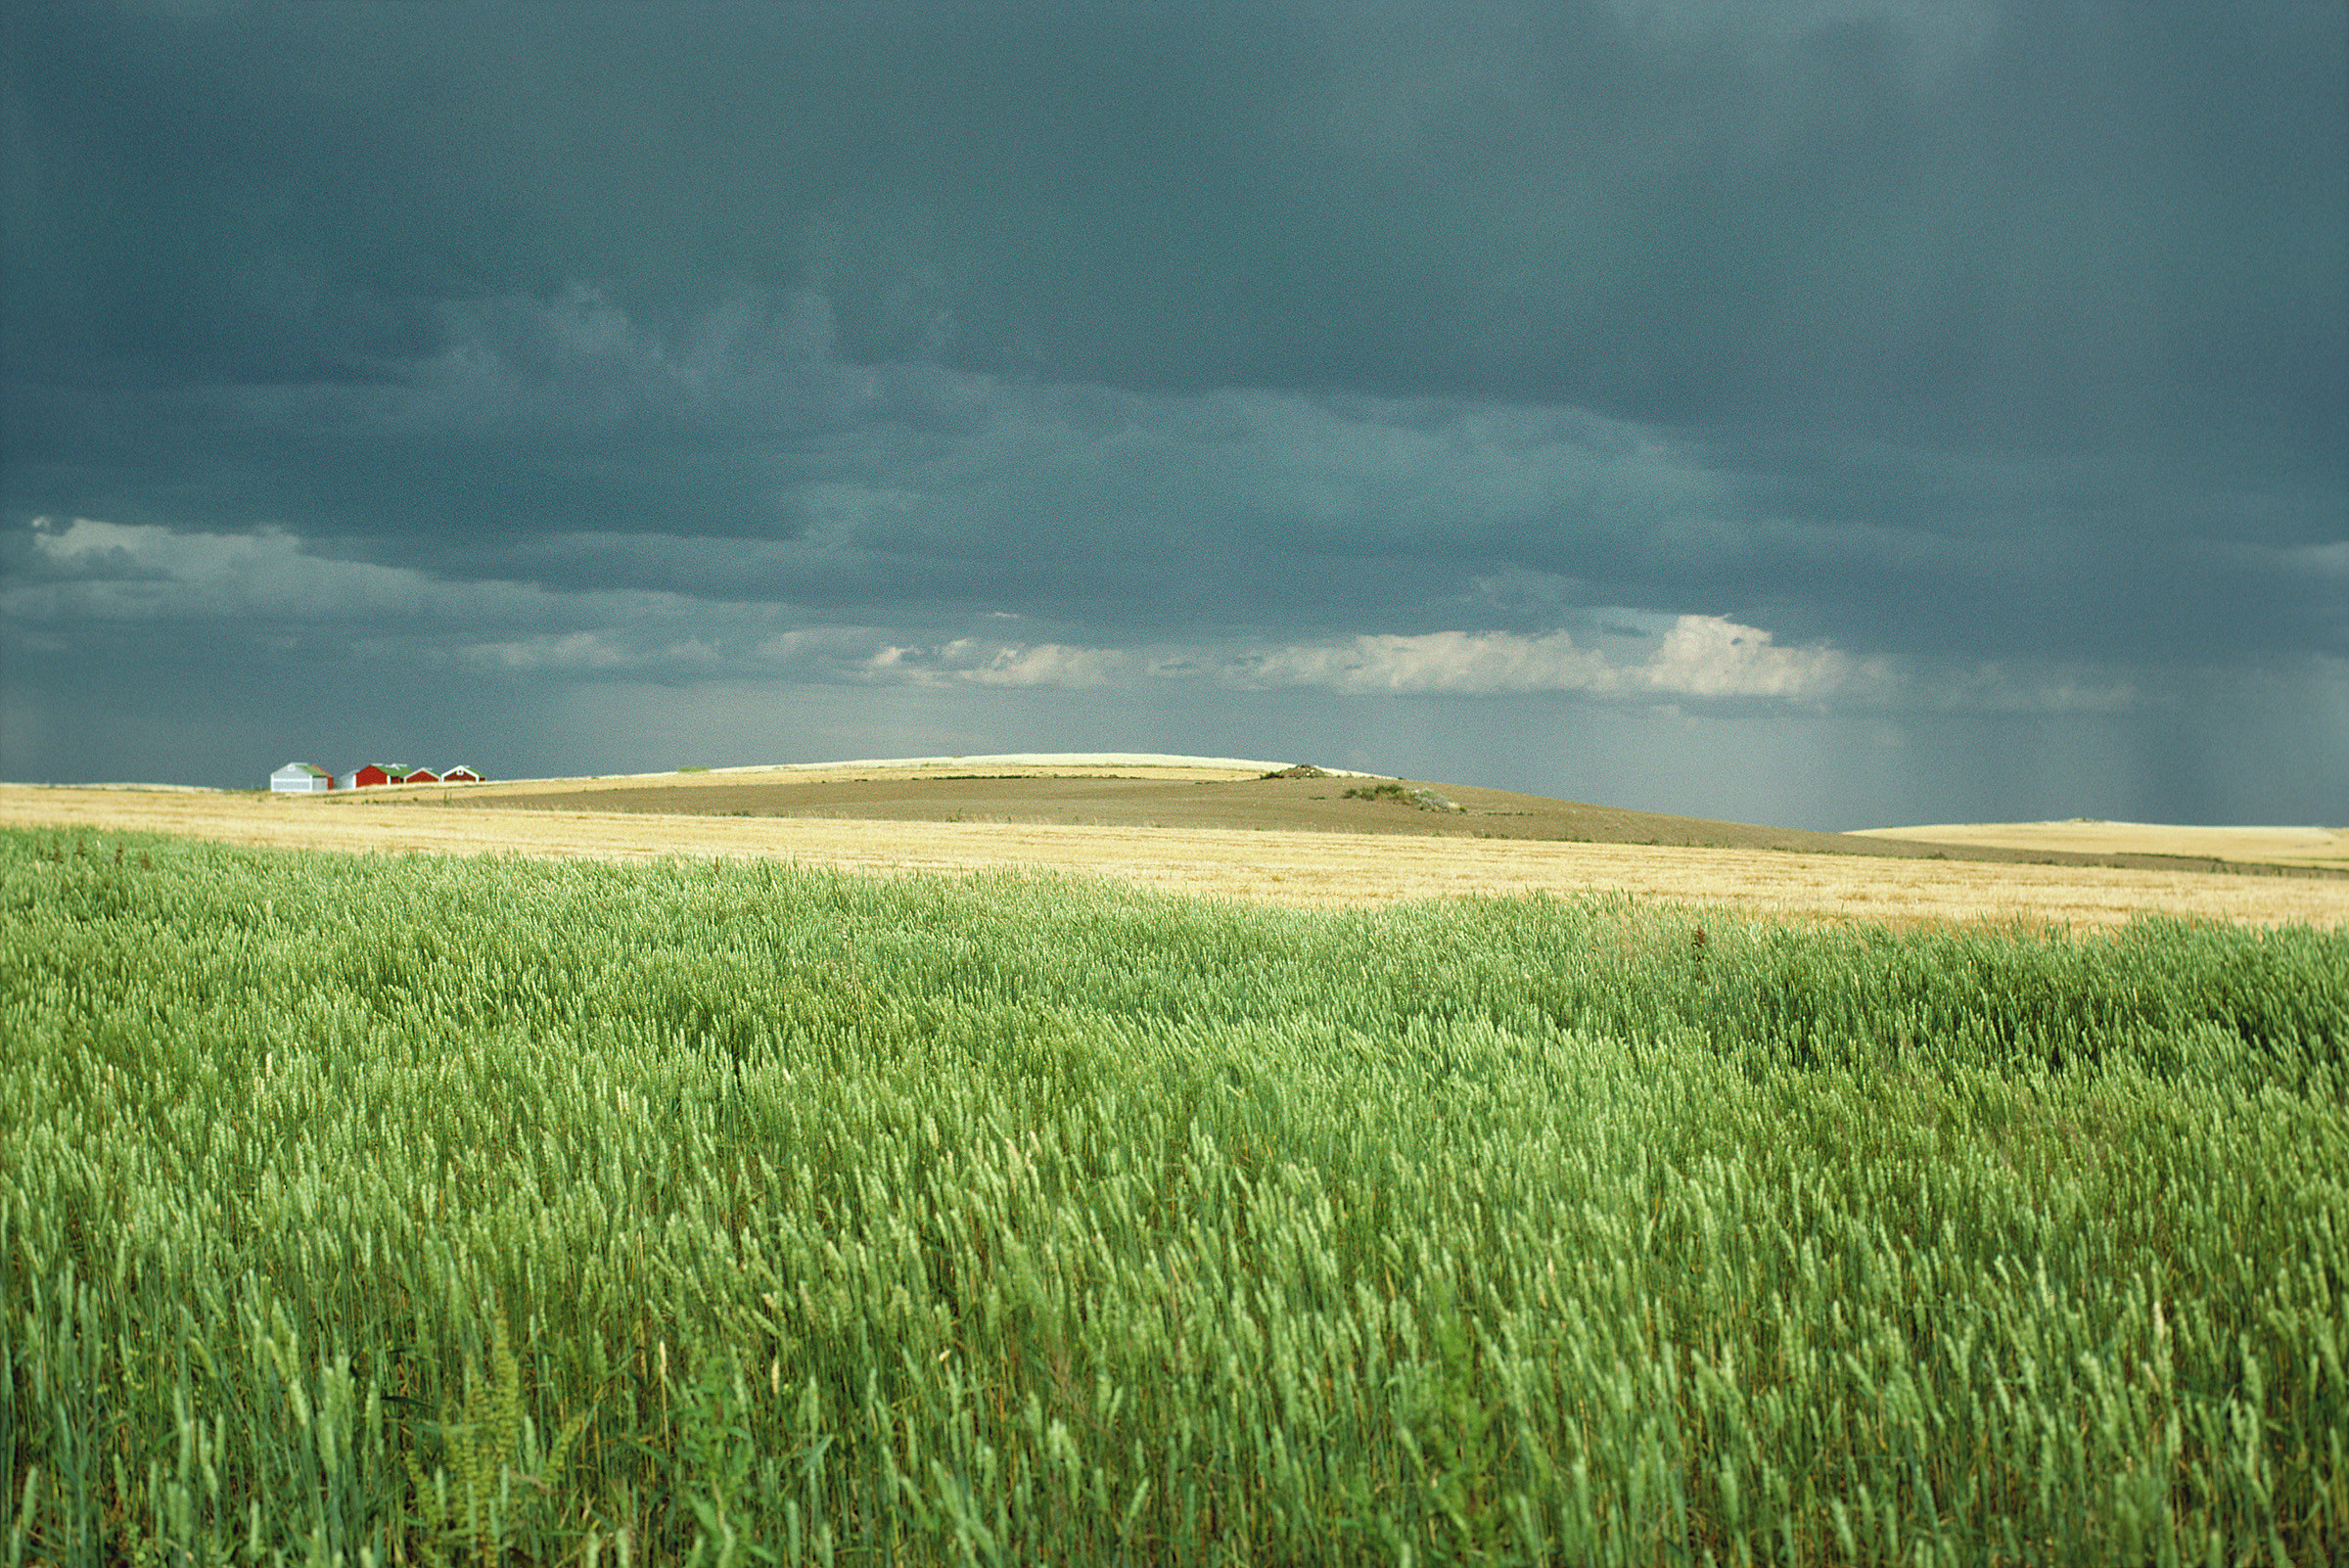 Crop with Rain Clouds